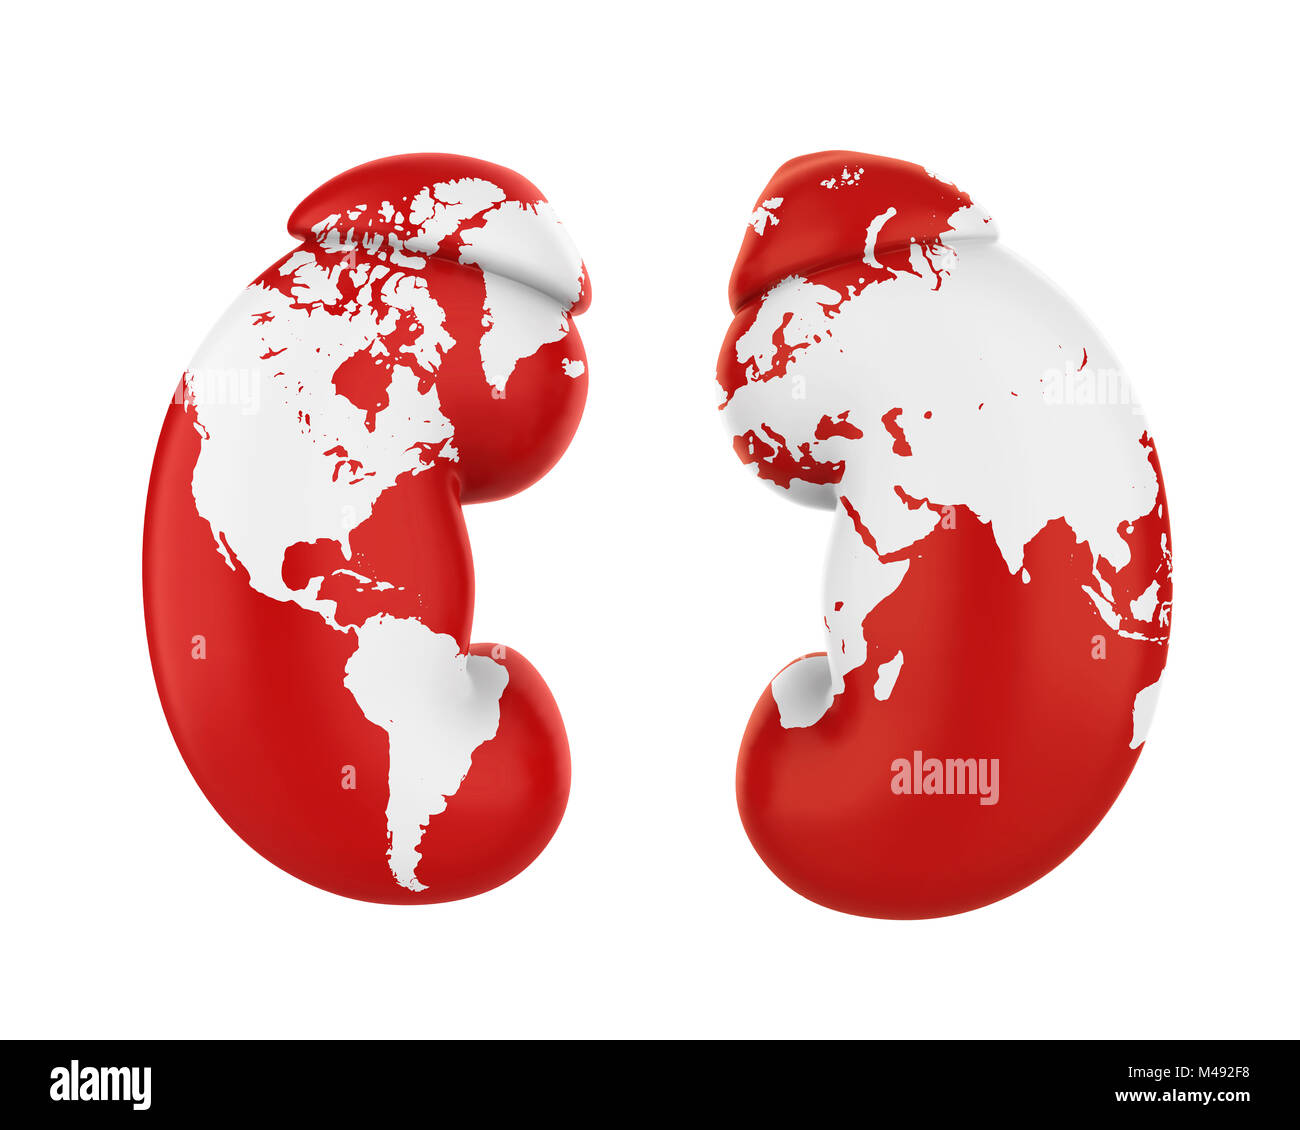 Human Kidneys with World Map. World Kidney Day Concept - Stock Image